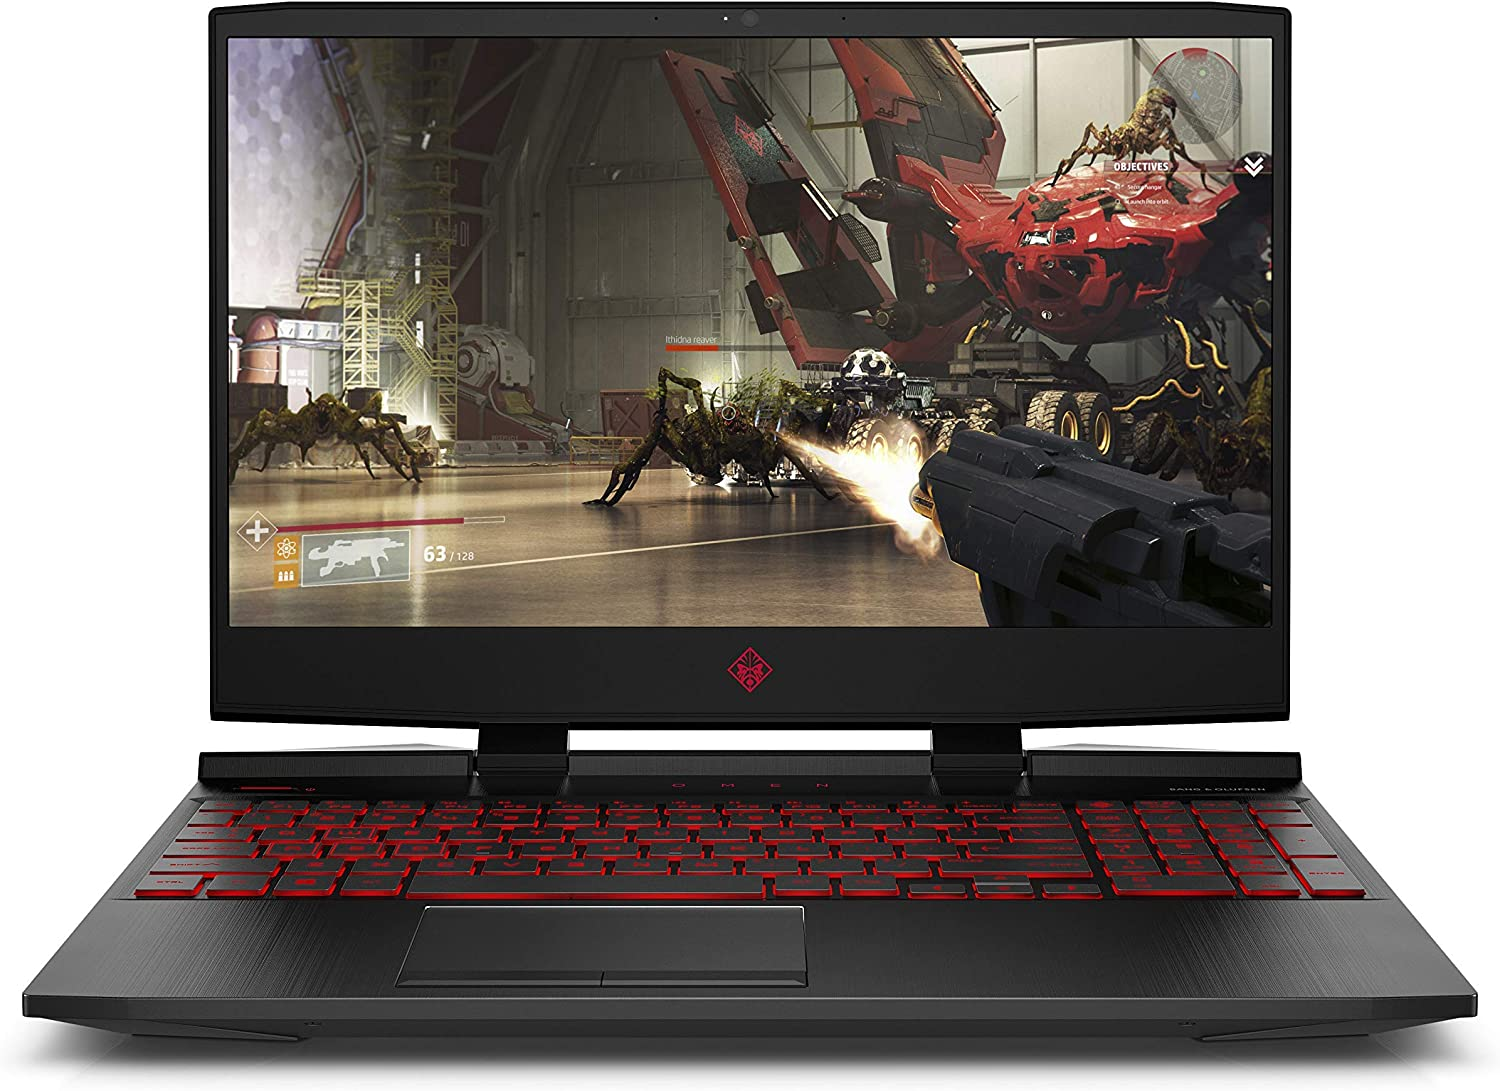 OMEN by HP 2018 15-inch Gaming Laptop, Intel i7-8750H Processor, NVIDIA GeForce GTX 1070, 32 GB RAM, 512 GB SSD, VR Ready, Windows 10 (15-dc0045nr, Black) (Renewed)